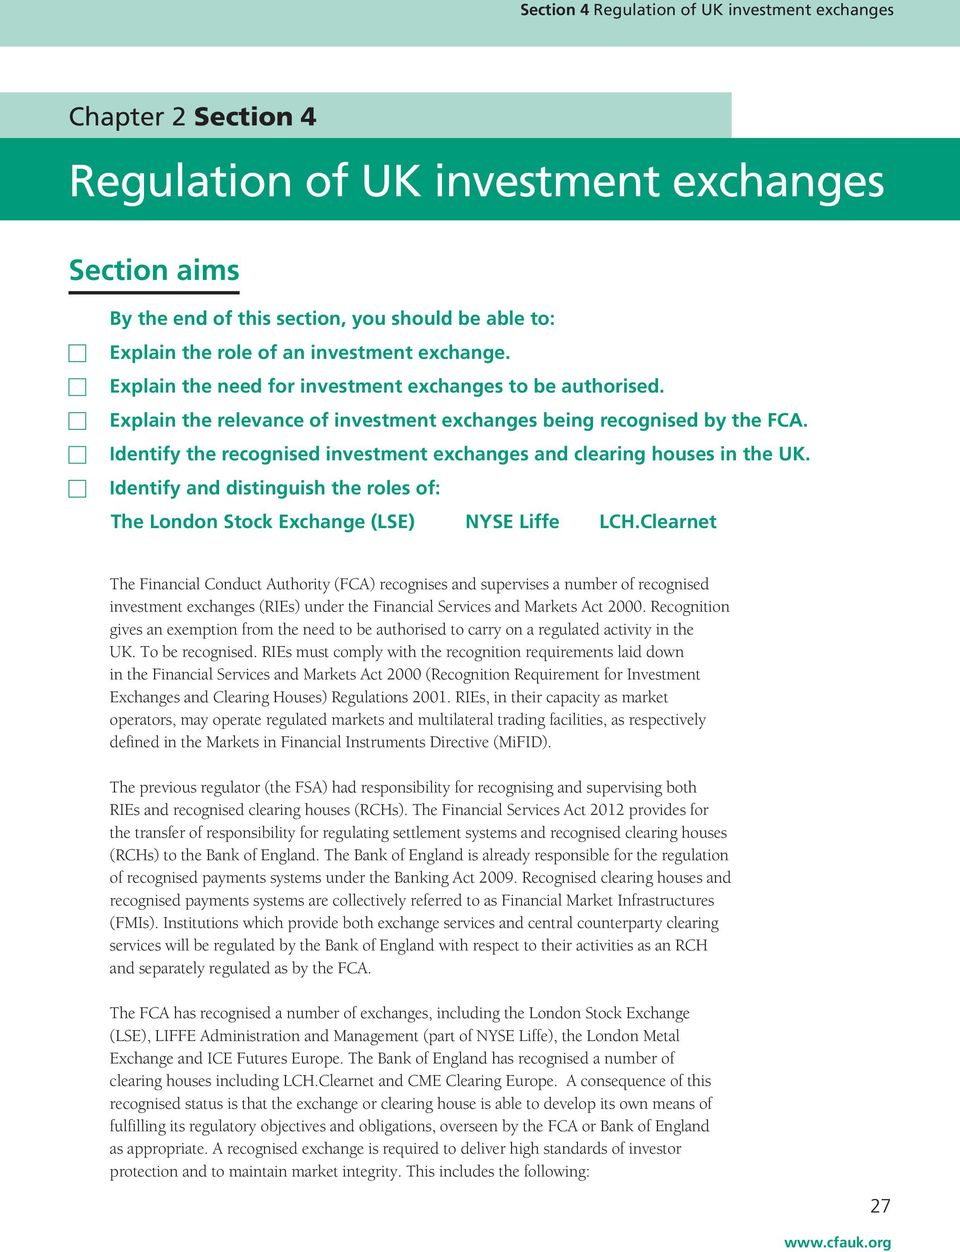 Identify the recognised investment exchanges and clearing houses in the UK. Identify and distinguish the roles of: The London Stock Exchange (LSE) NYSE Liffe LCH.